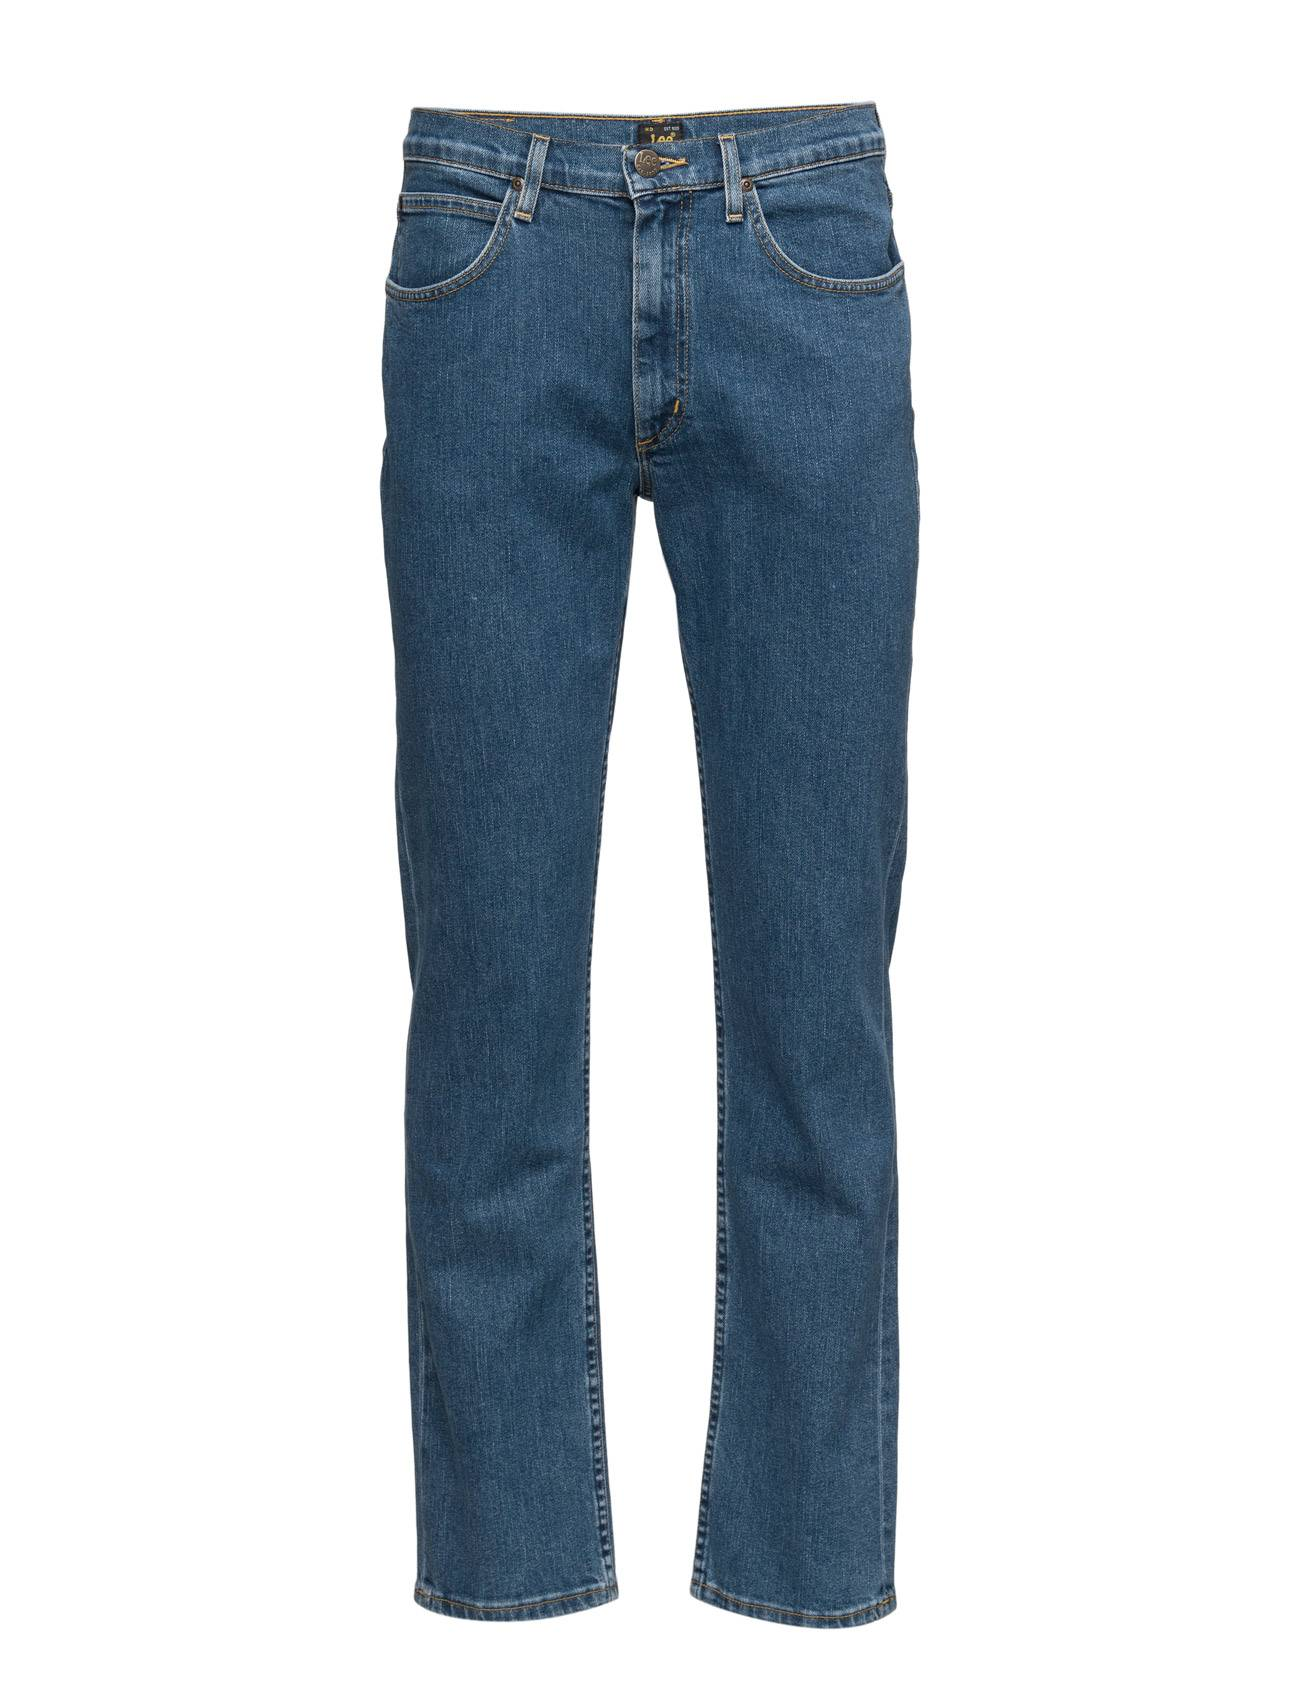 Lee Jeans Brooklyn Straight